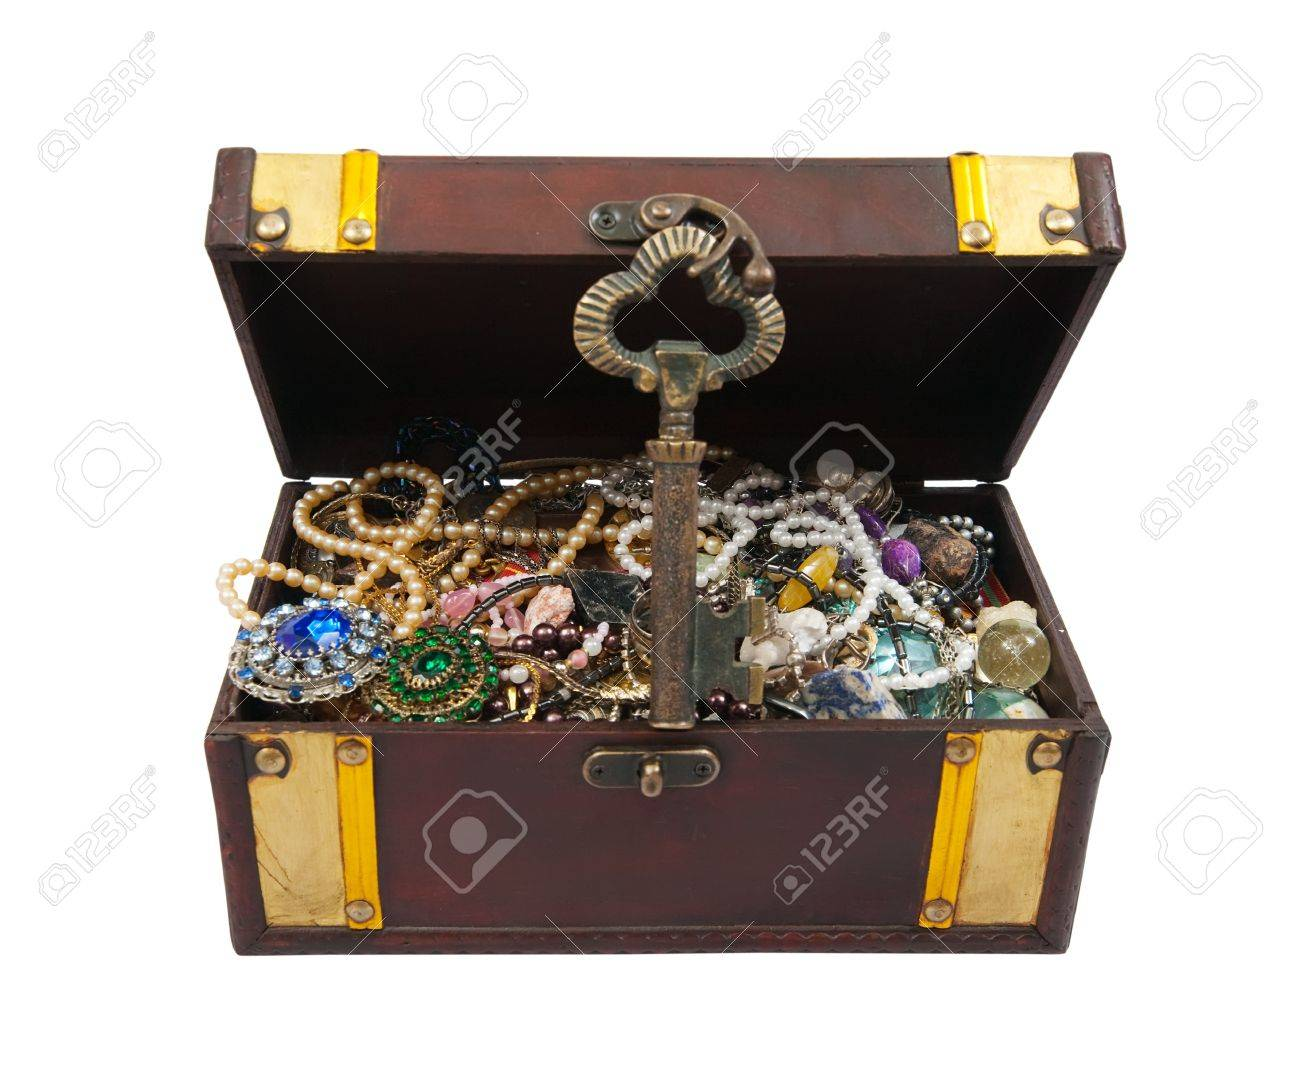 wooden treasure chest with valuables and gem, isolated over white background Stock Photo - 8202605